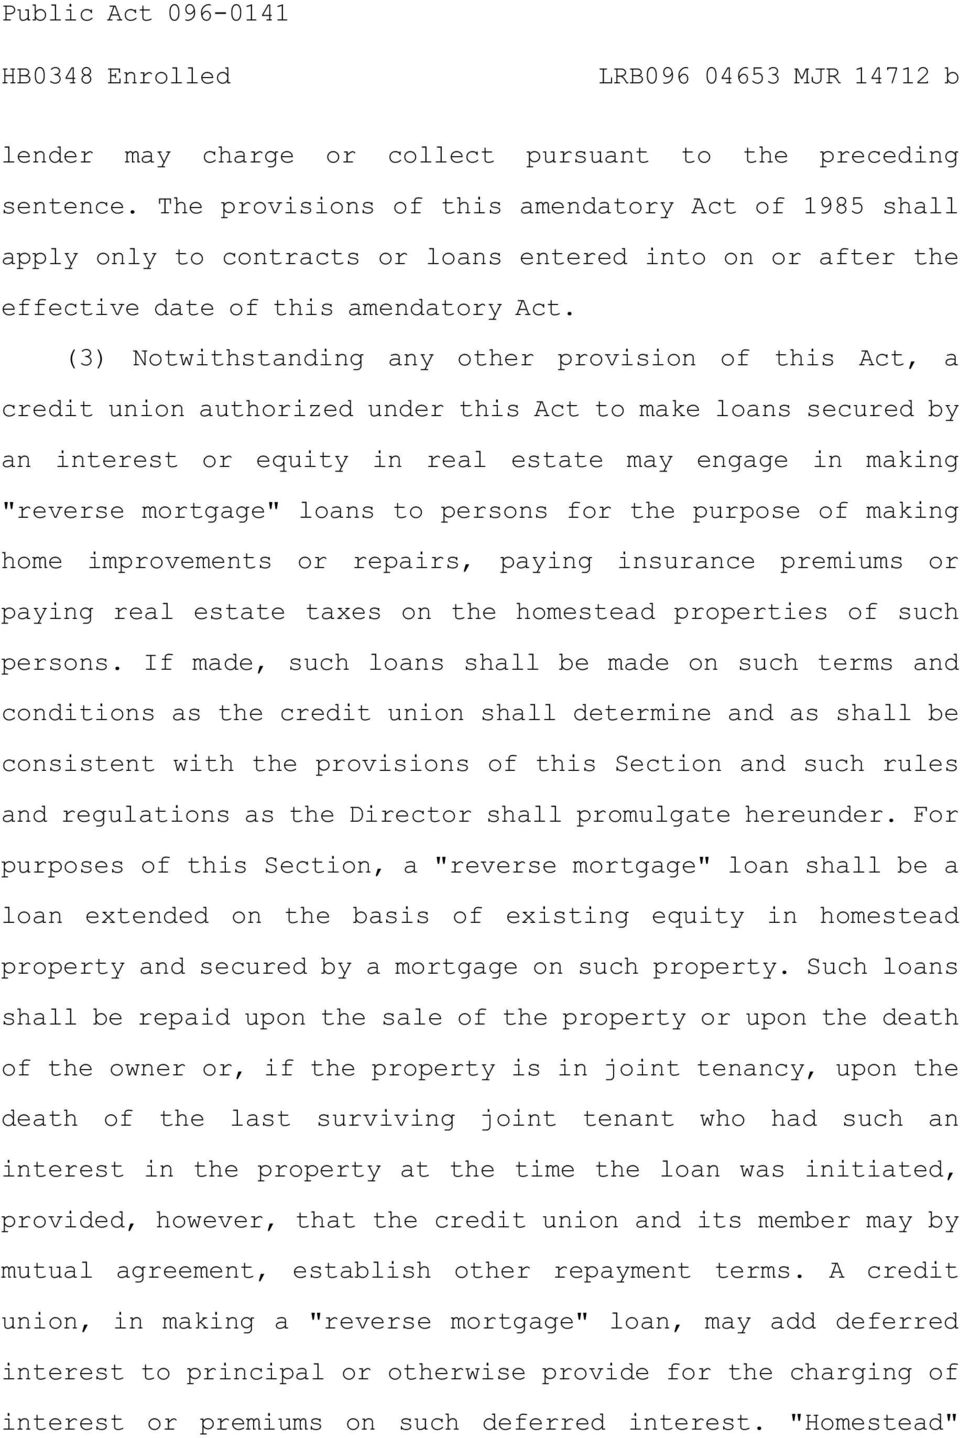 "(3) Notwithstanding any other provision of this Act, a credit union authorized under this Act to make loans secured by an interest or equity in real estate may engage in making ""reverse mortgage"""